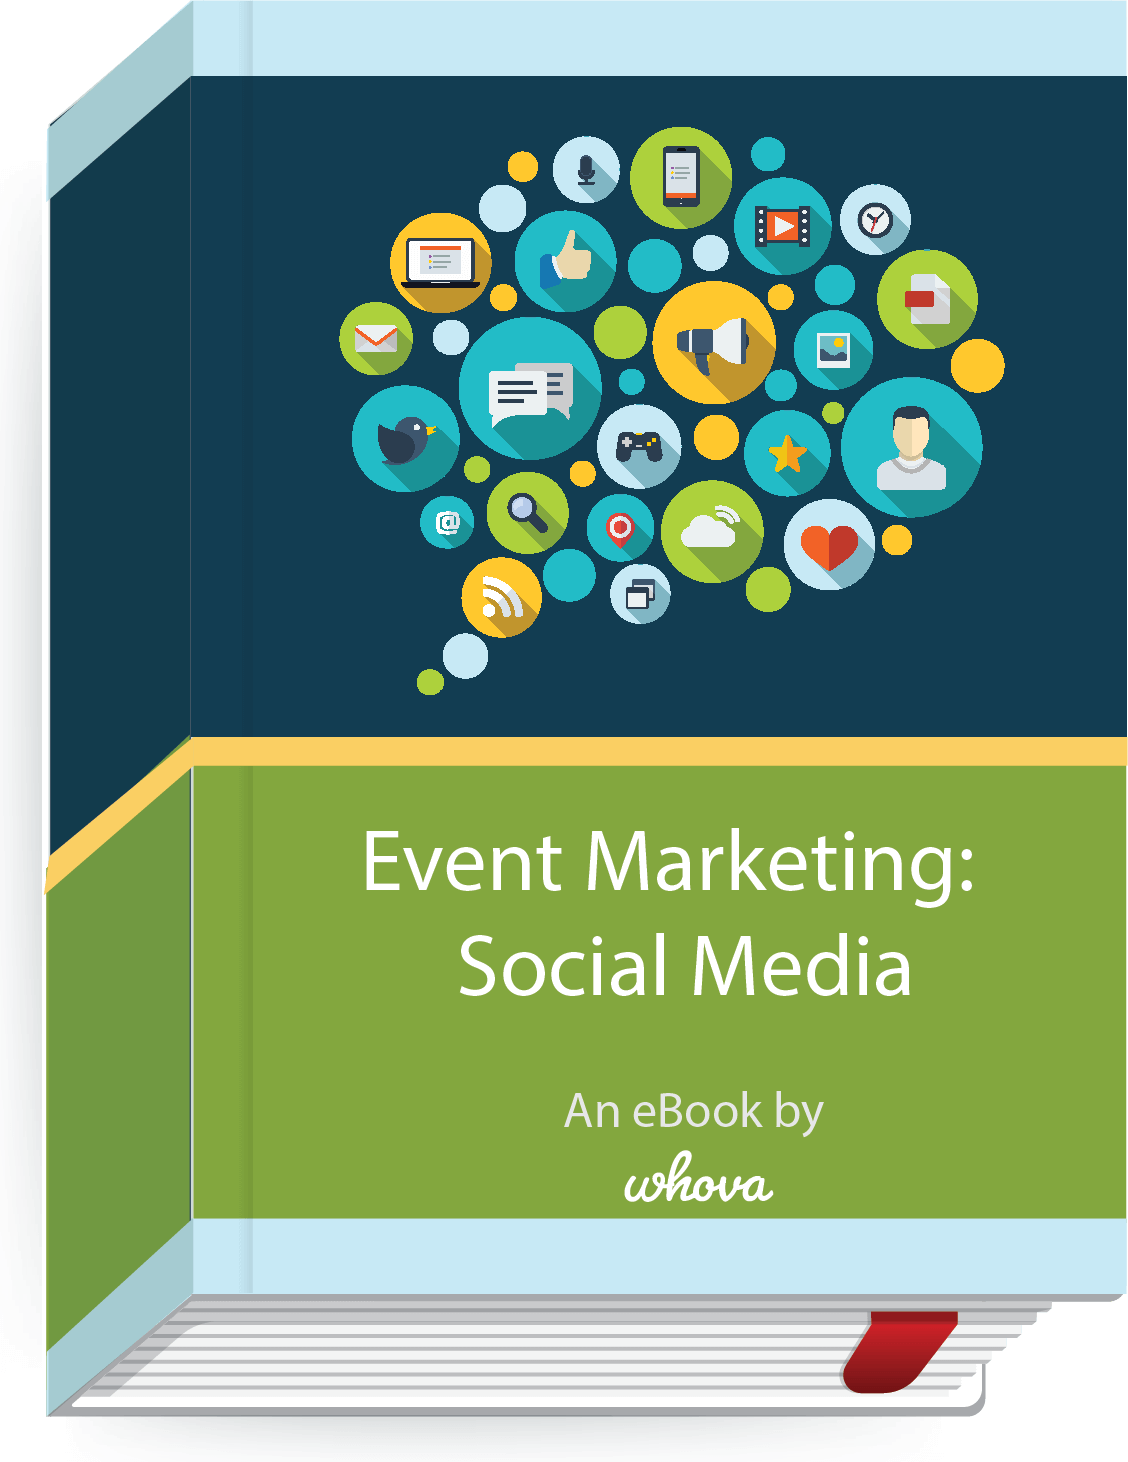 Event Marketing Social Media E-book